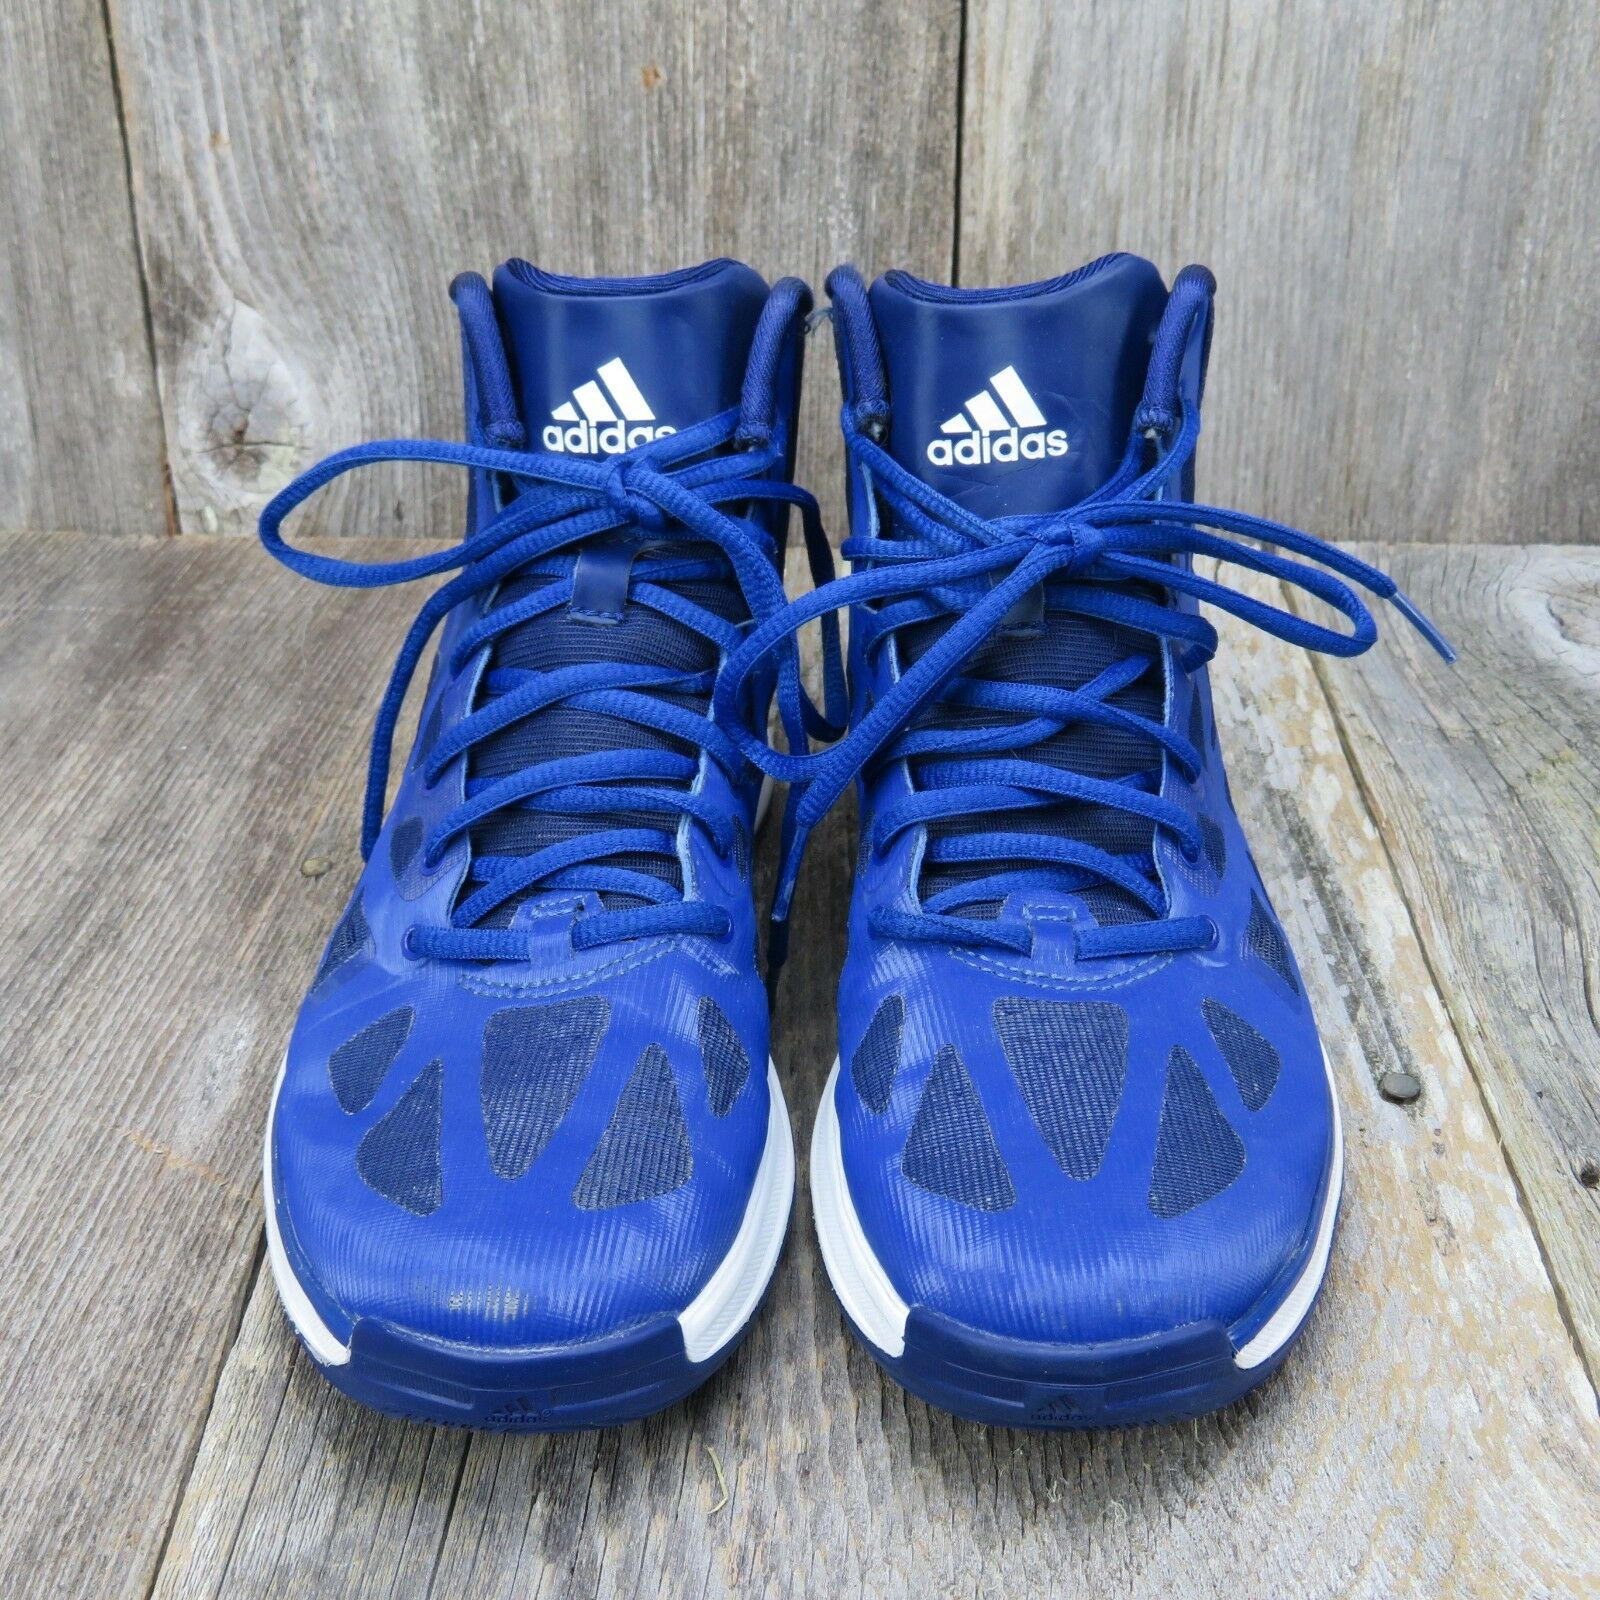 Adidas Crazy Shadow 2 Mens Size 6.5 Basketball shoes Q33383 2013 bluee White